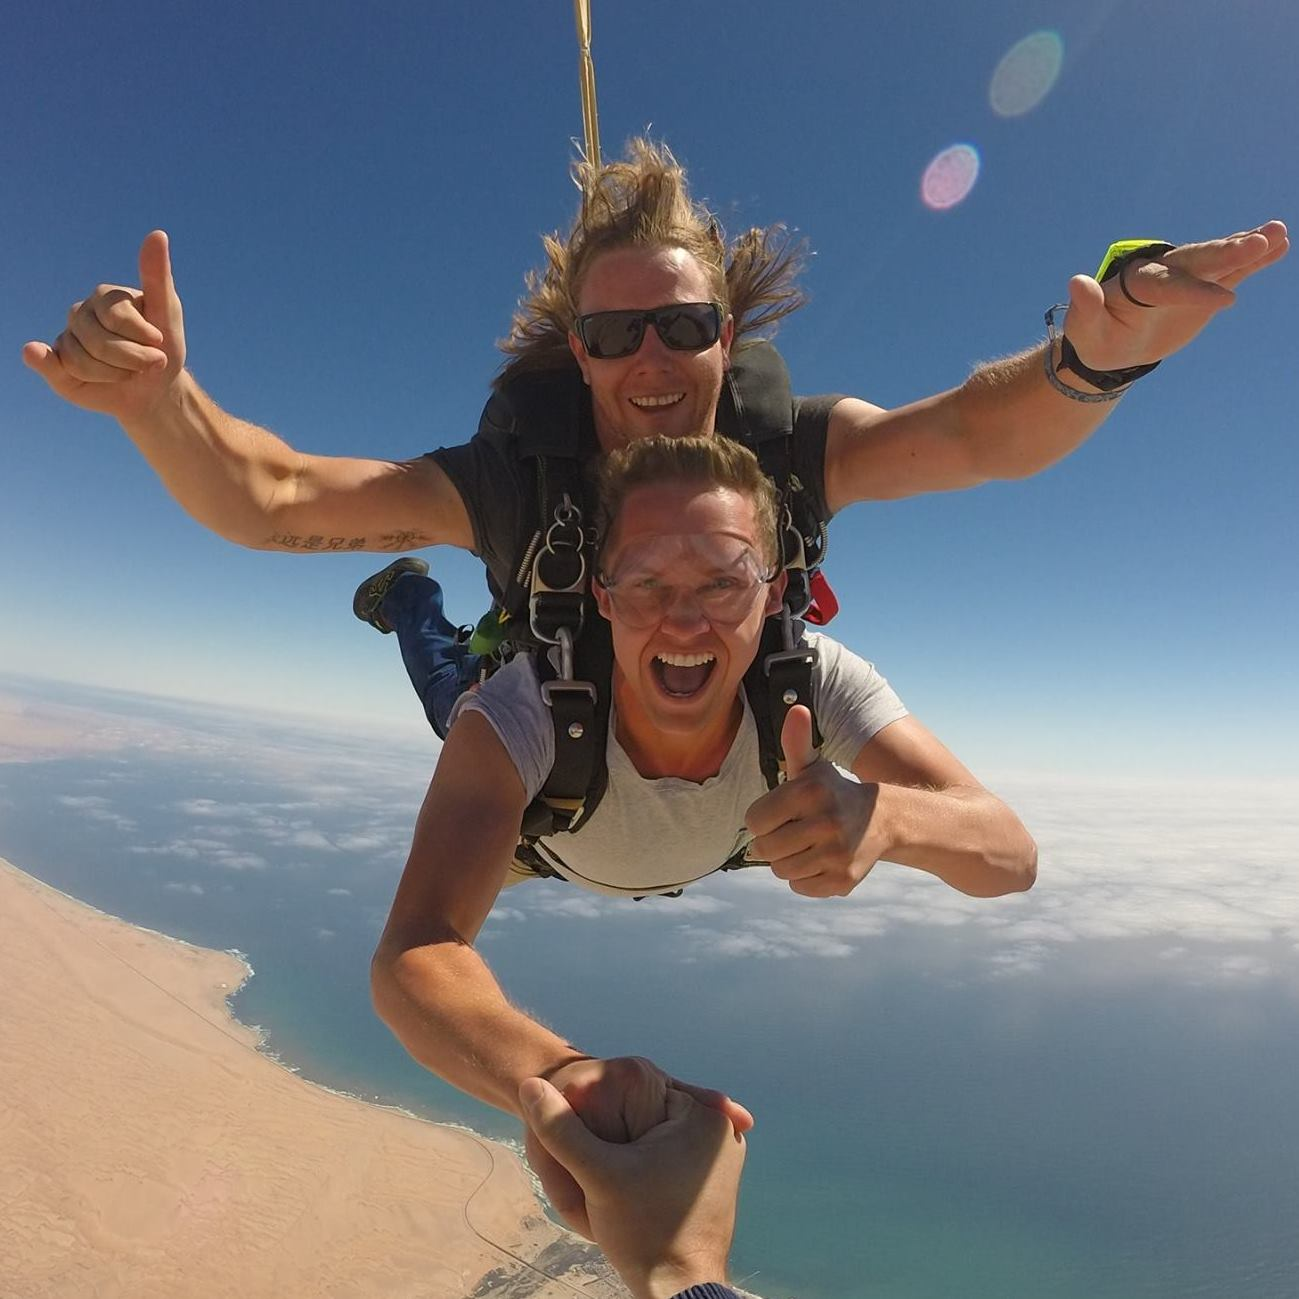 Skydiving near the set of Mad Max: Fury Road - Swakopmund, Namibia